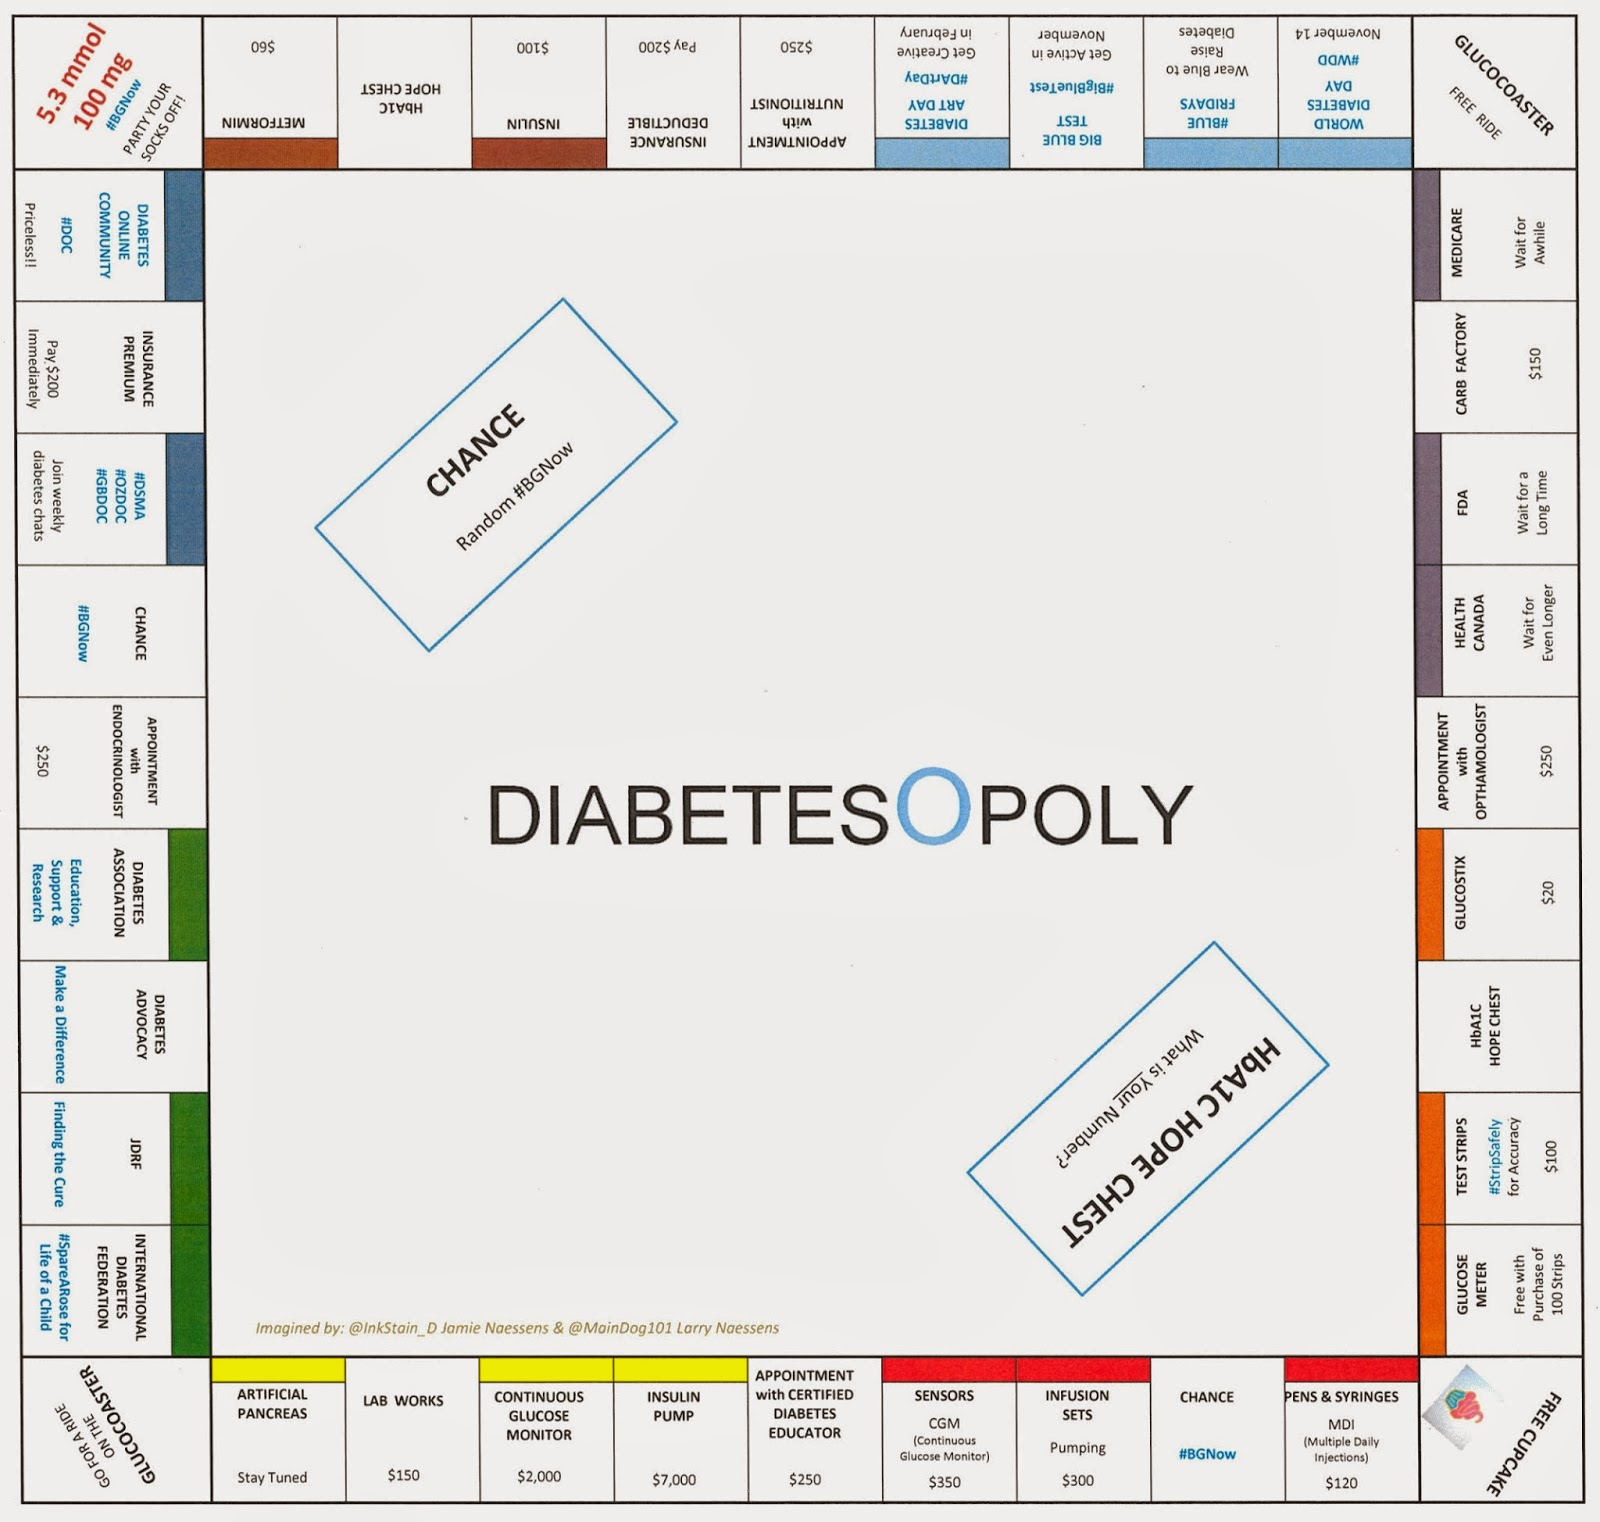 Flying Furballs: Diabetesopoly: The Living With Diabetes Game